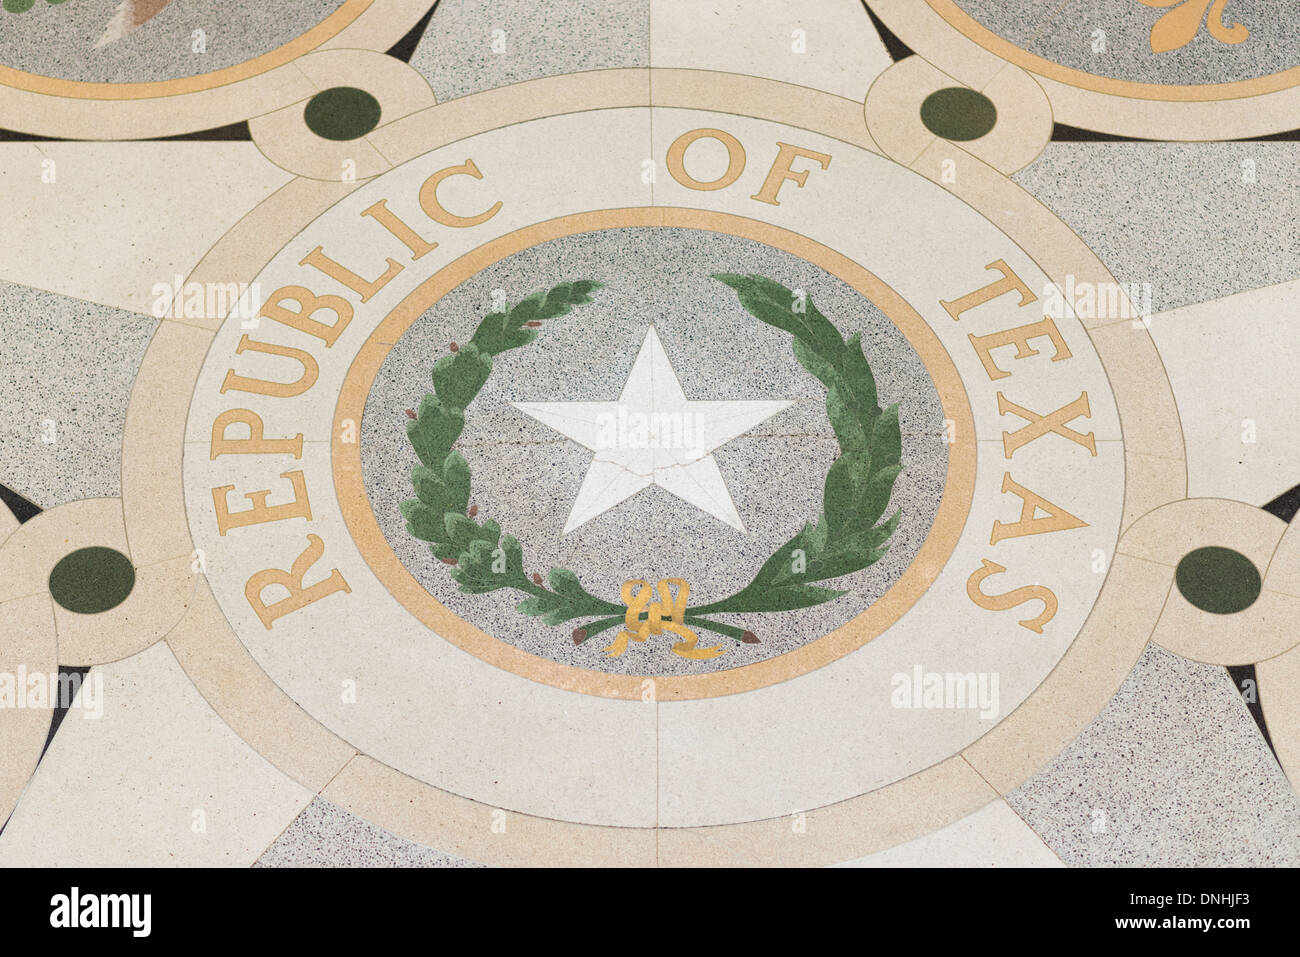 Texas State Capitol Building Austin Texas Rotunda Floor Tile